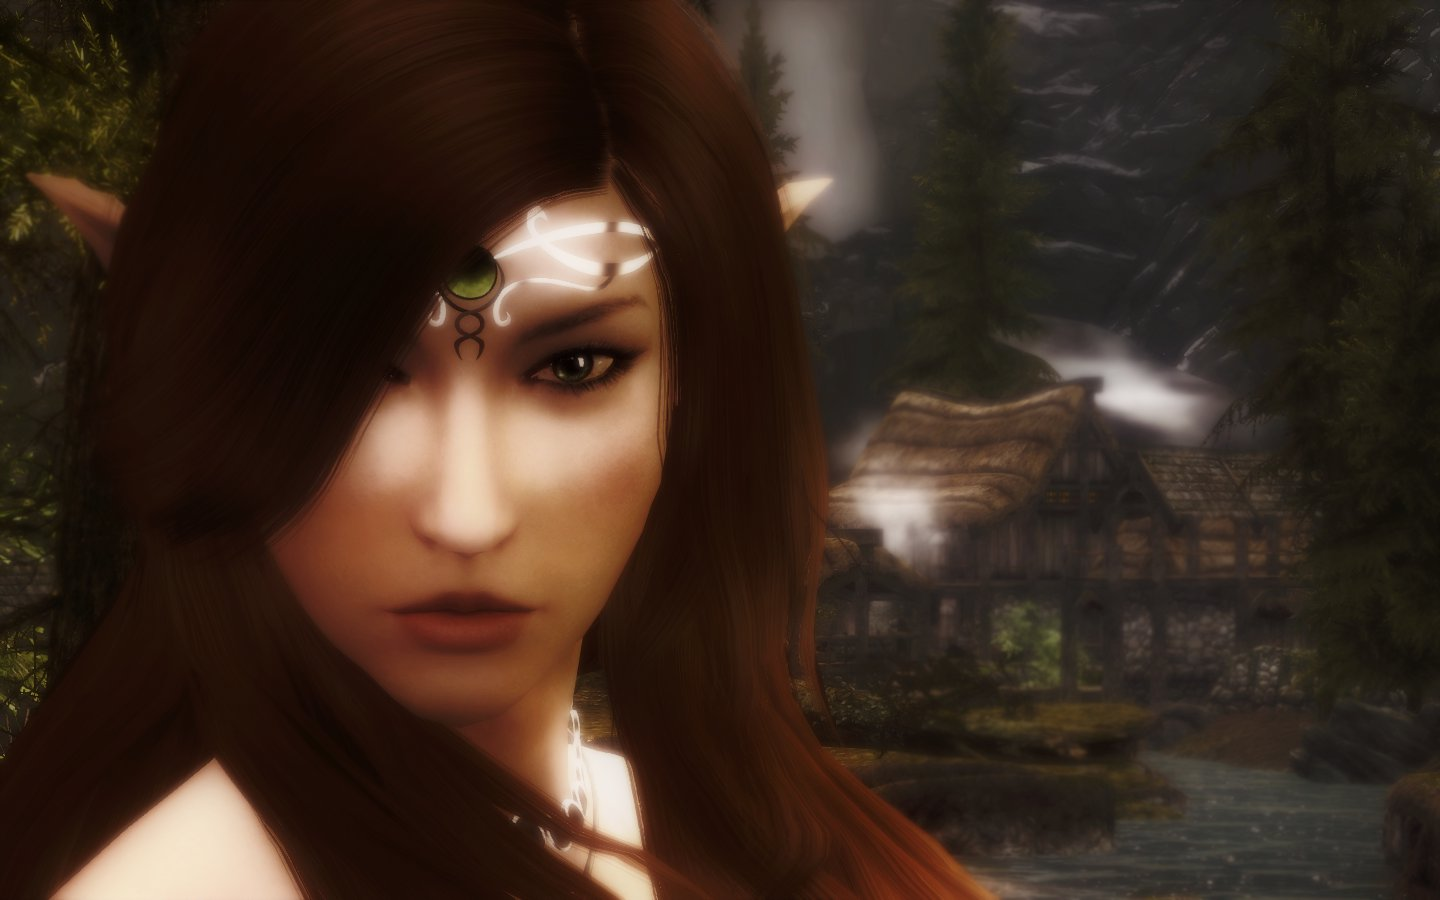 Skyrim mod 'Epic Elves' introduces the best looking elves as a new